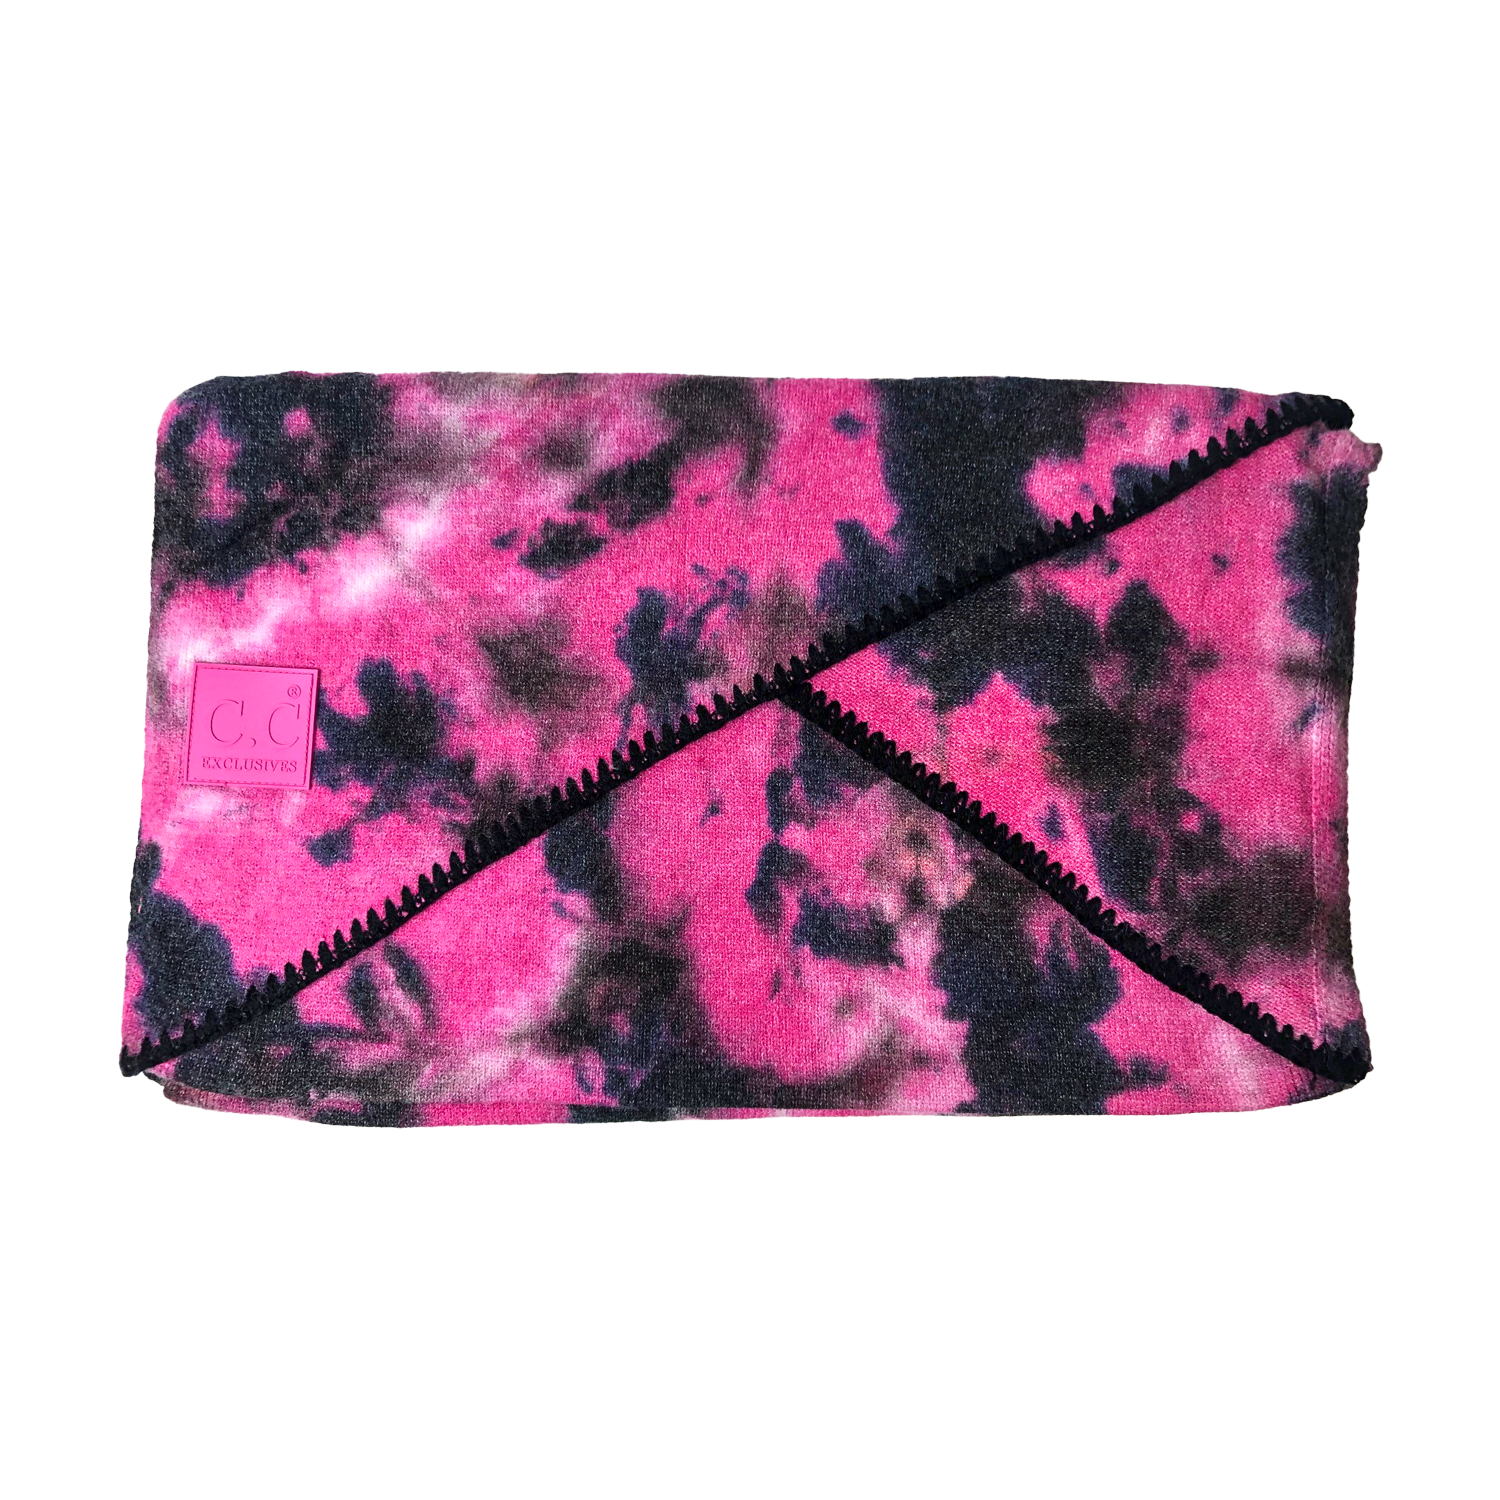 SF-7380 Tie Dye Scarf with C.C Rubber Patch - Black/Hot Pink